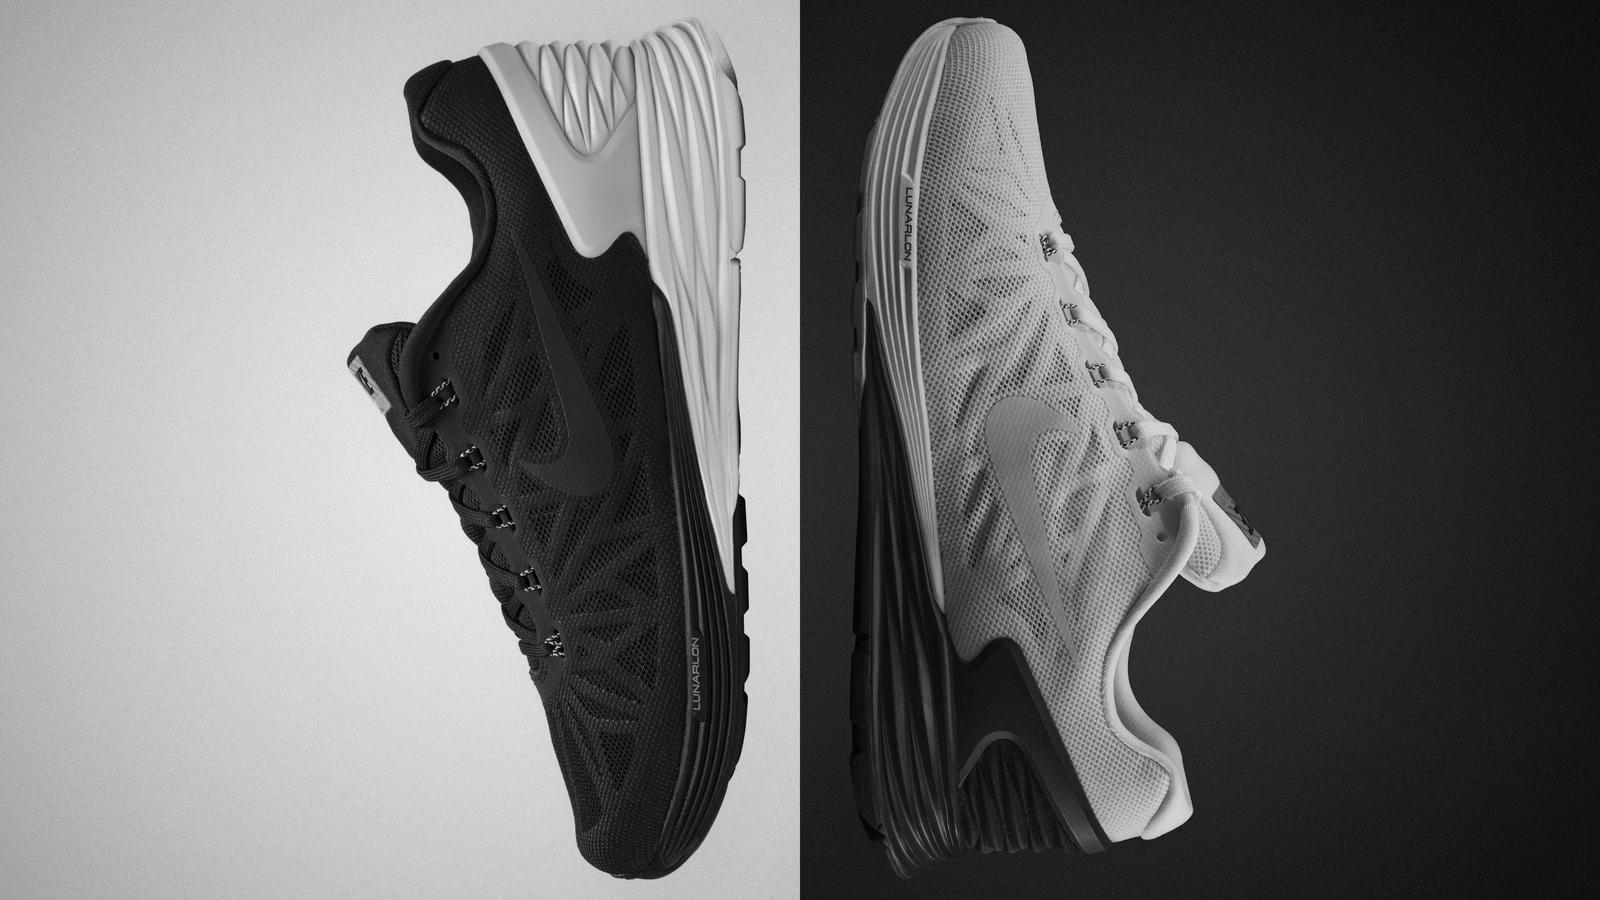 f64e29761fea NikeLab presents a bold new expression of the Nike LunarGlide 6 ...